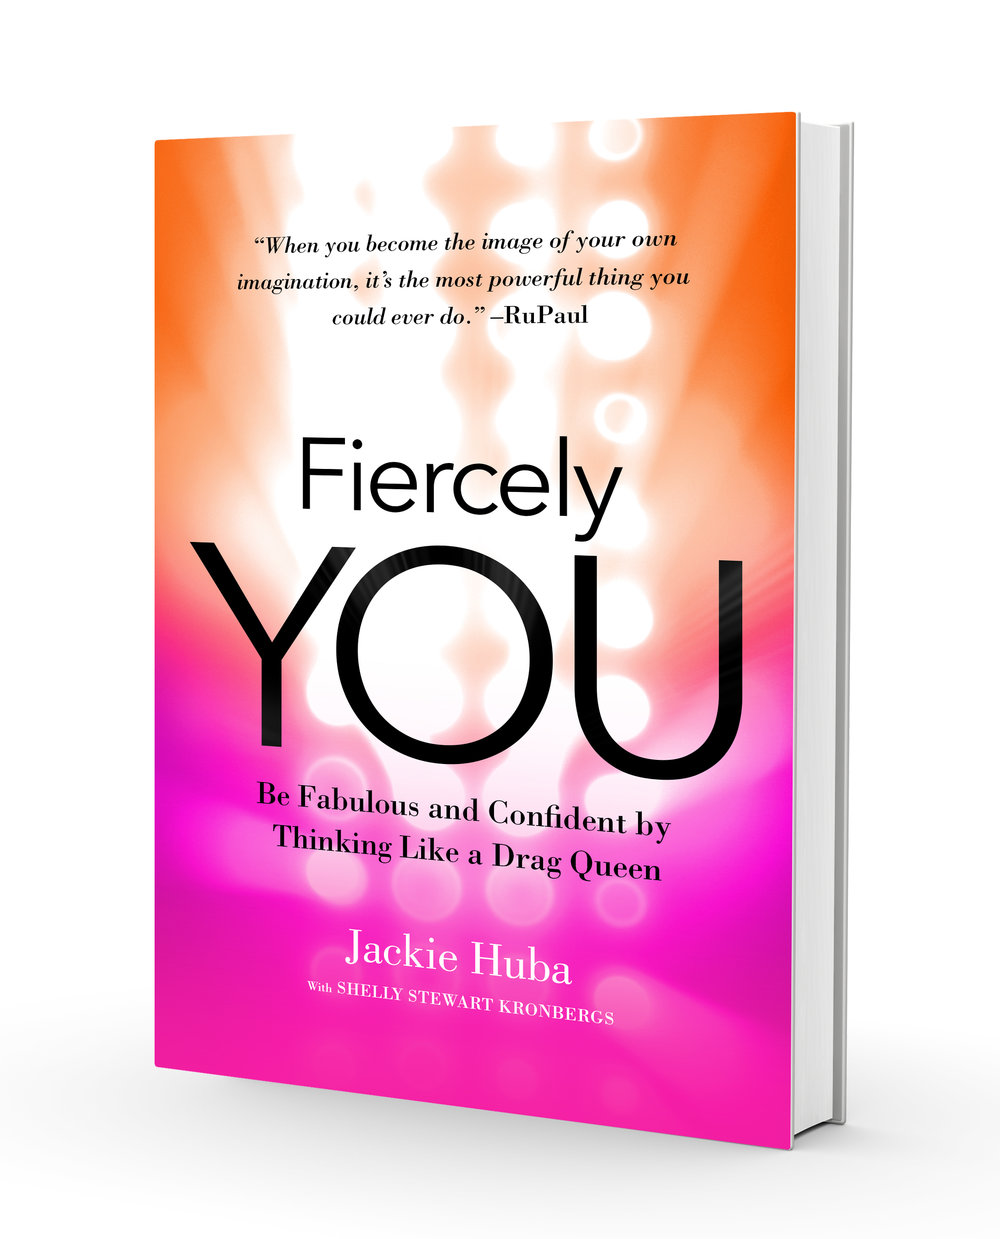 FiercelyYou_3DCover_WhiteBackground.jpg